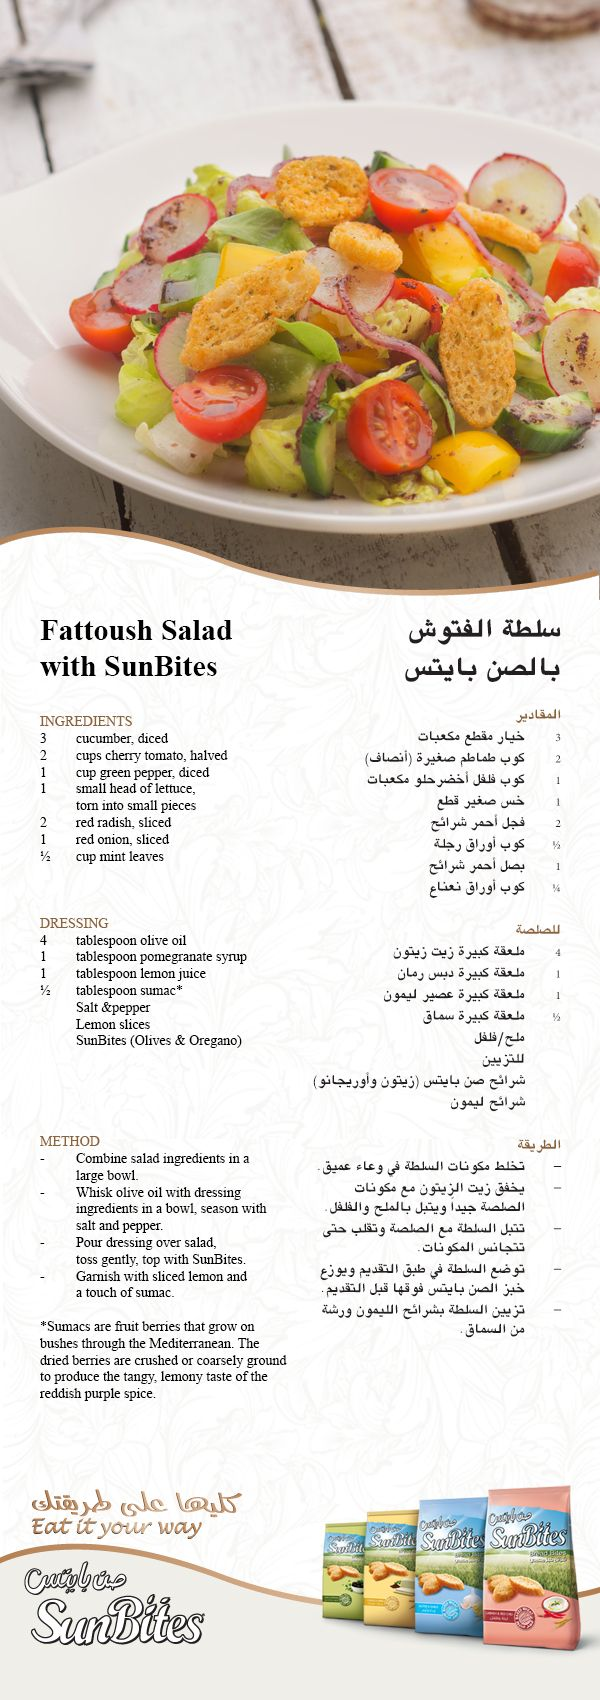 Sunbites Arabia Healthy Meal Plans Recipes Cooking Recipes